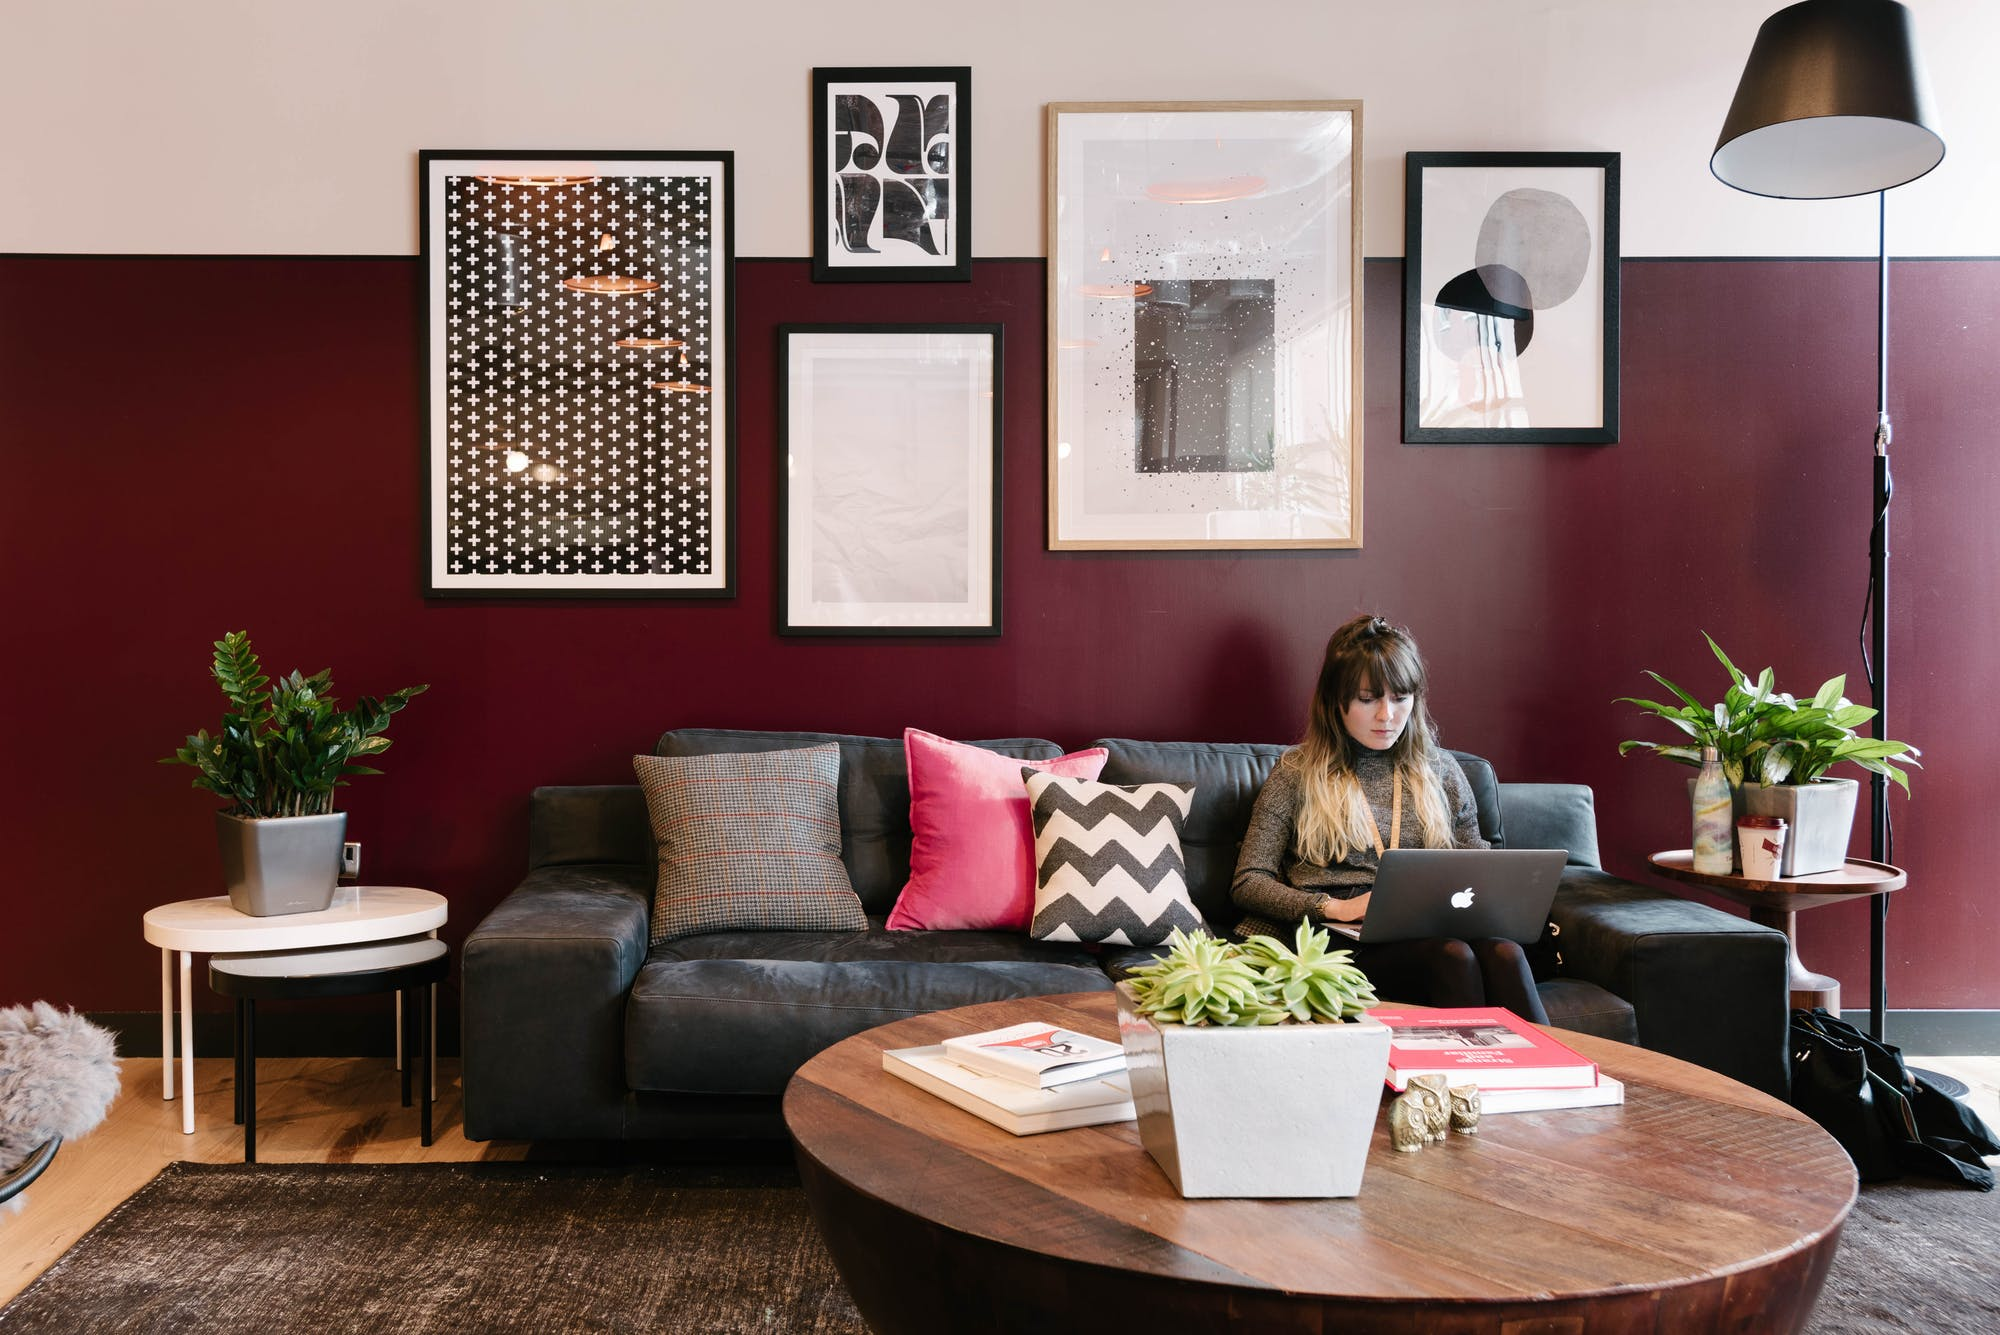 WeWork Artz Pedregal, Mexico City